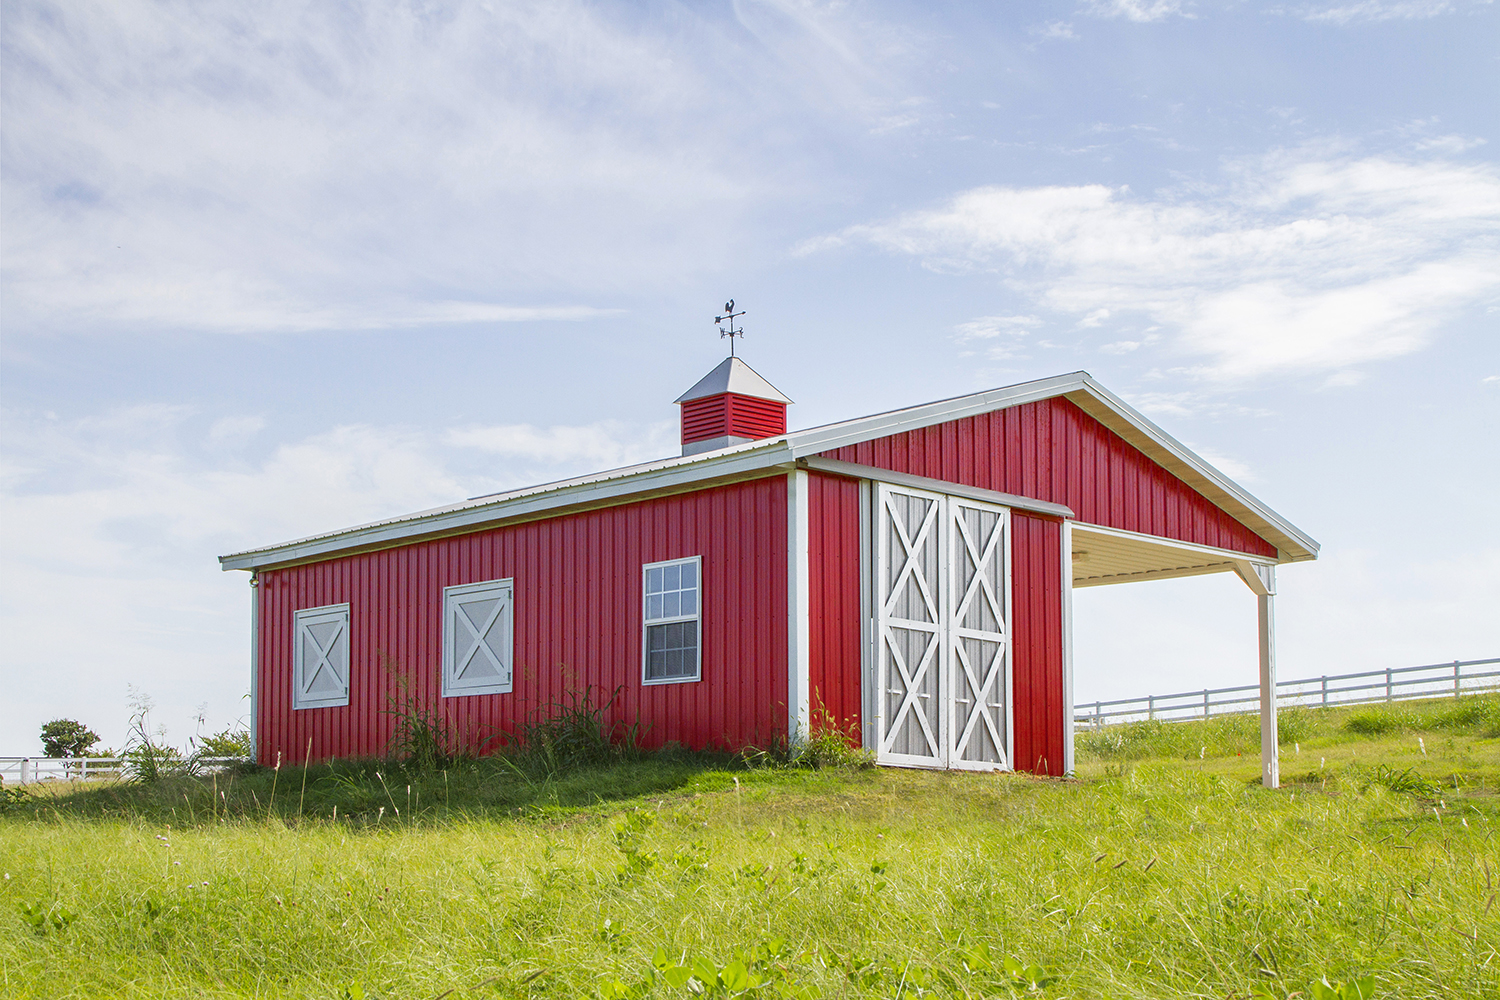 Barn Featured Image.jpg